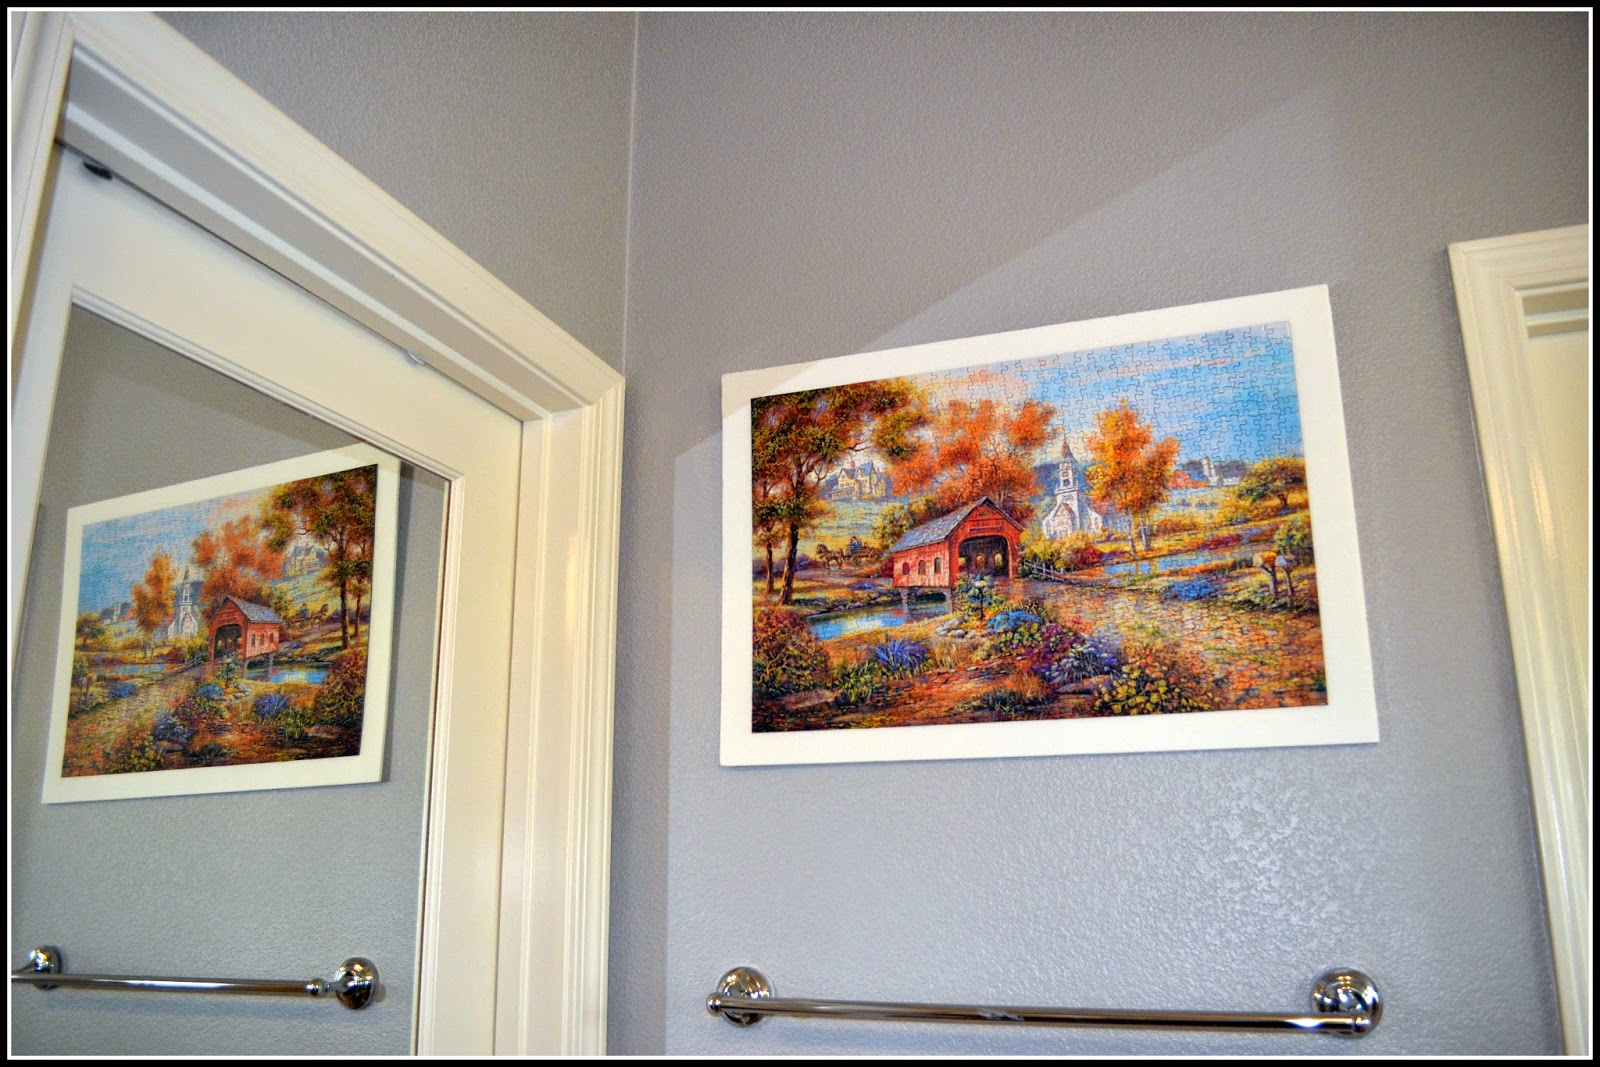 Jigsaw Puzzle as wall art